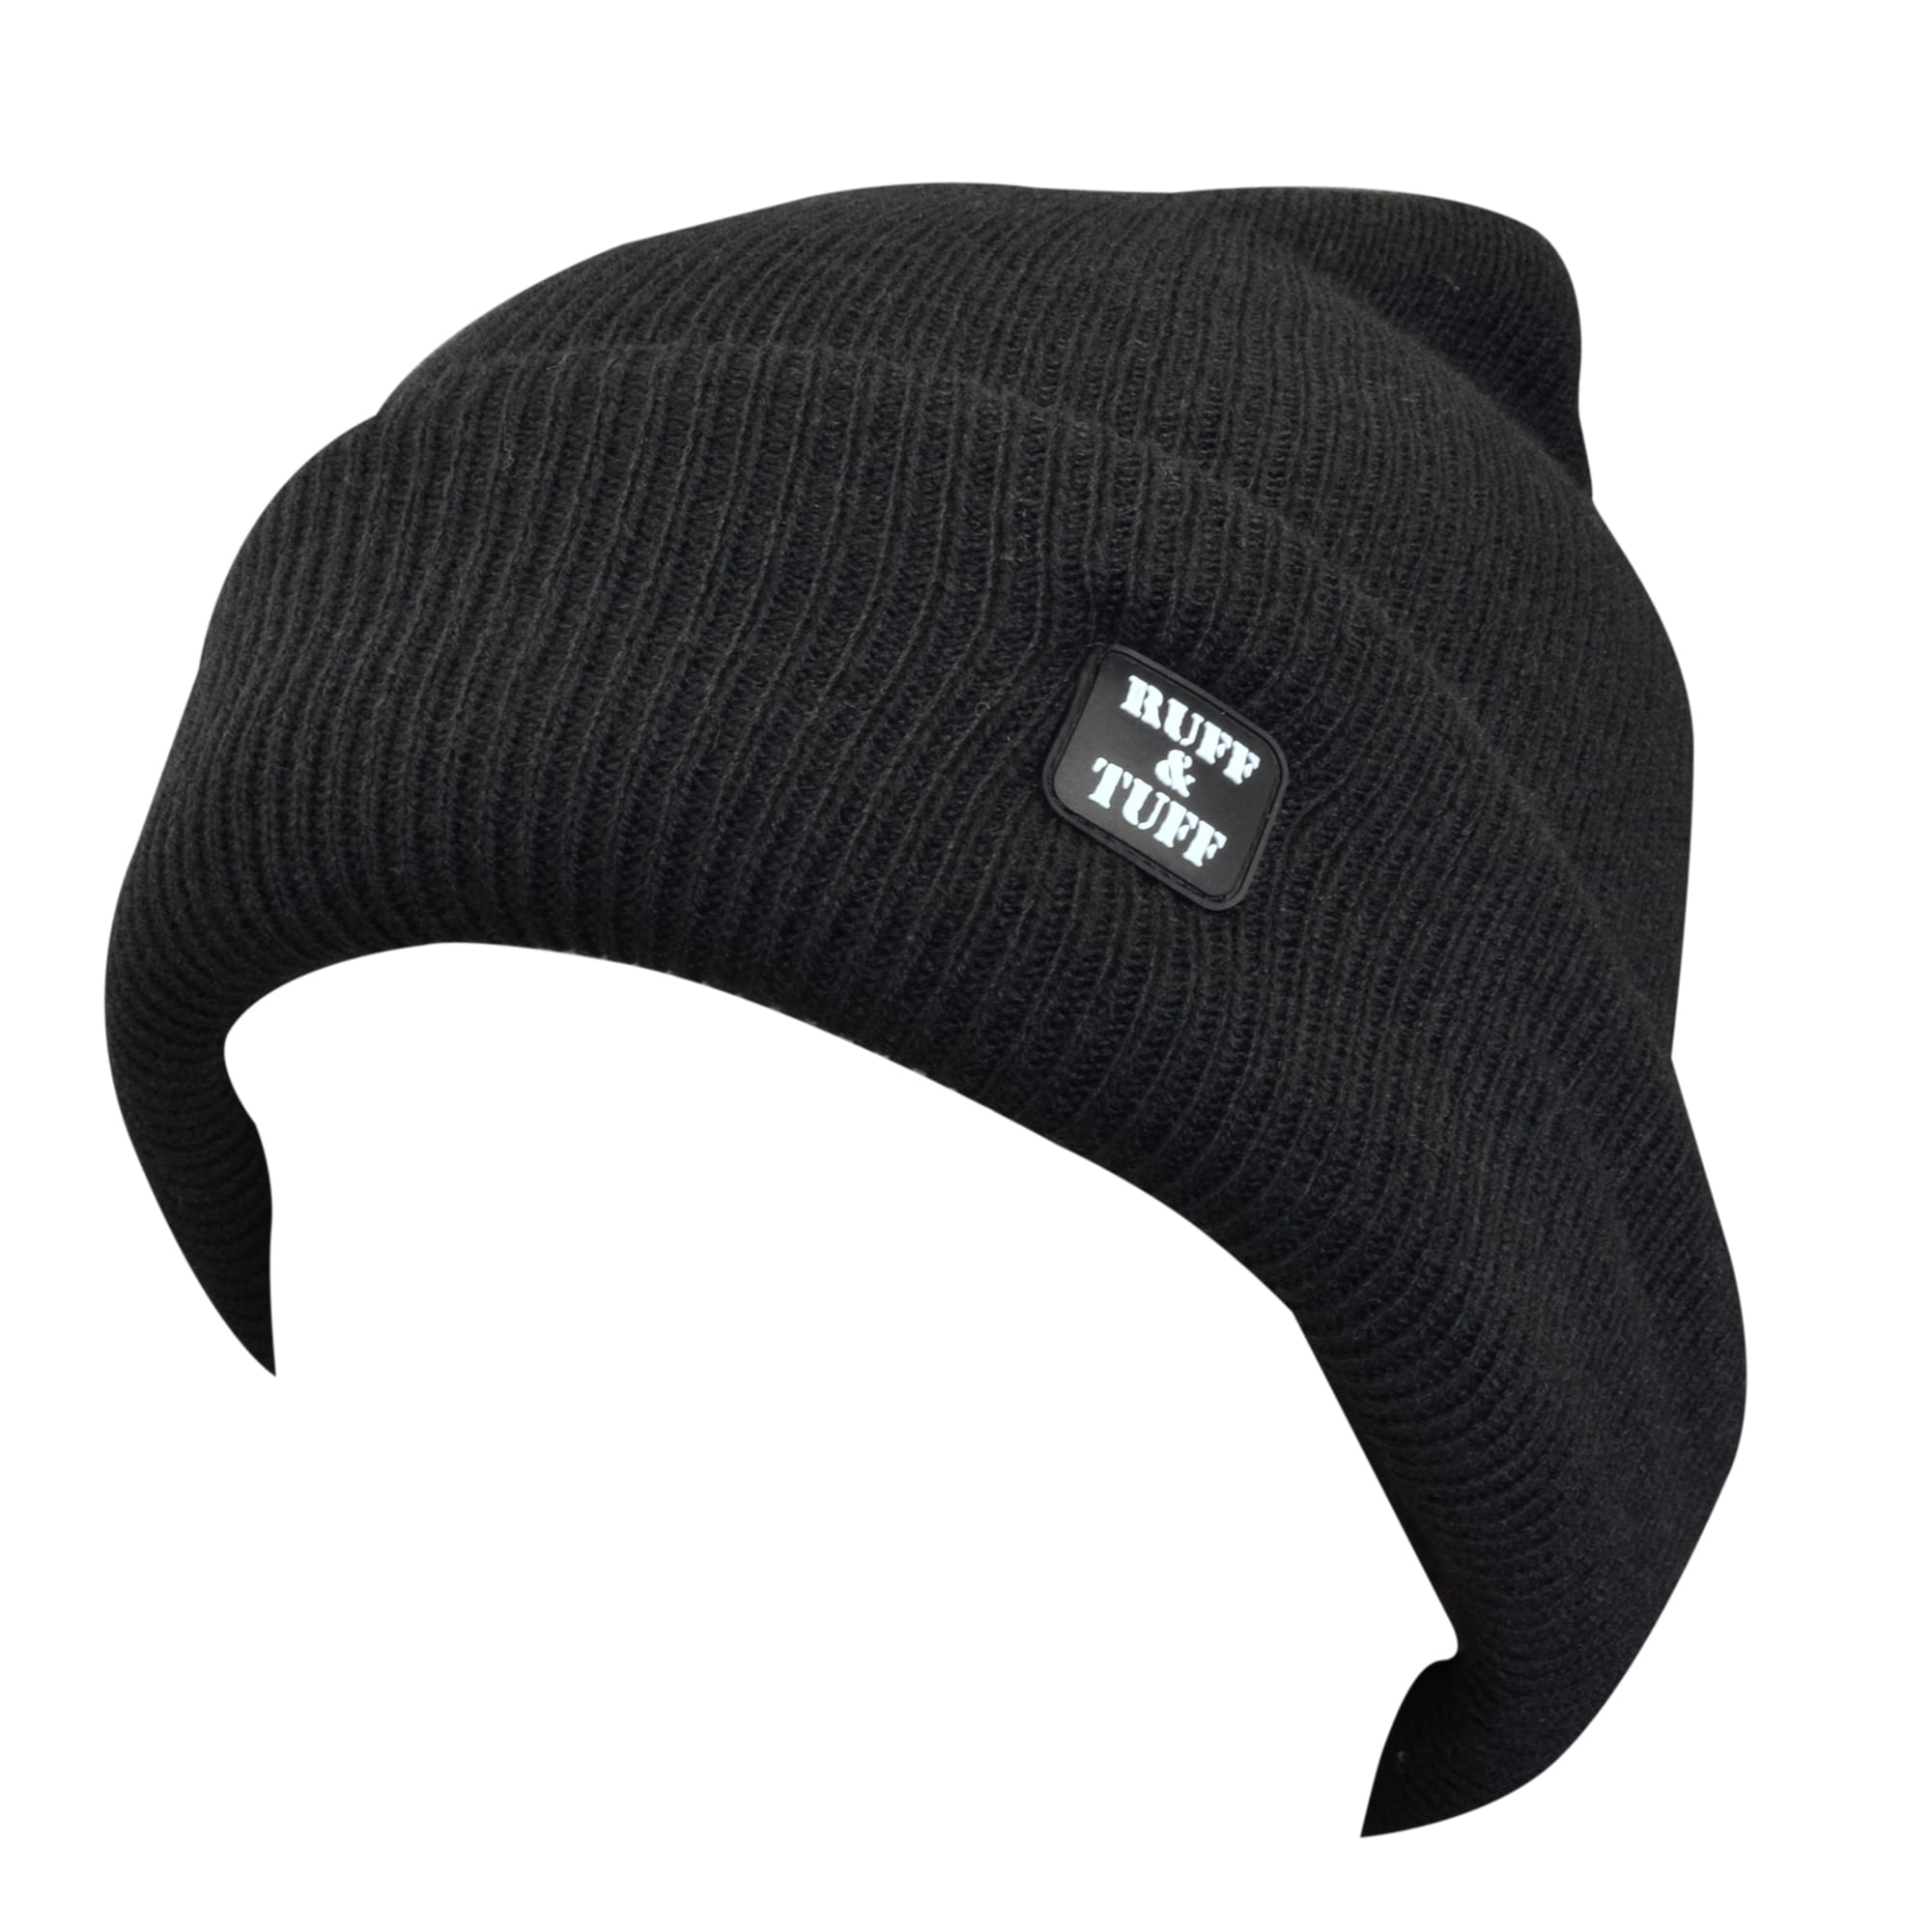 8d1487aa144c Shop Quiet Wear Ruff & Tuff 4-layer Cuff Cap - Free Shipping On Orders Over  $45 - Overstock - 6310913